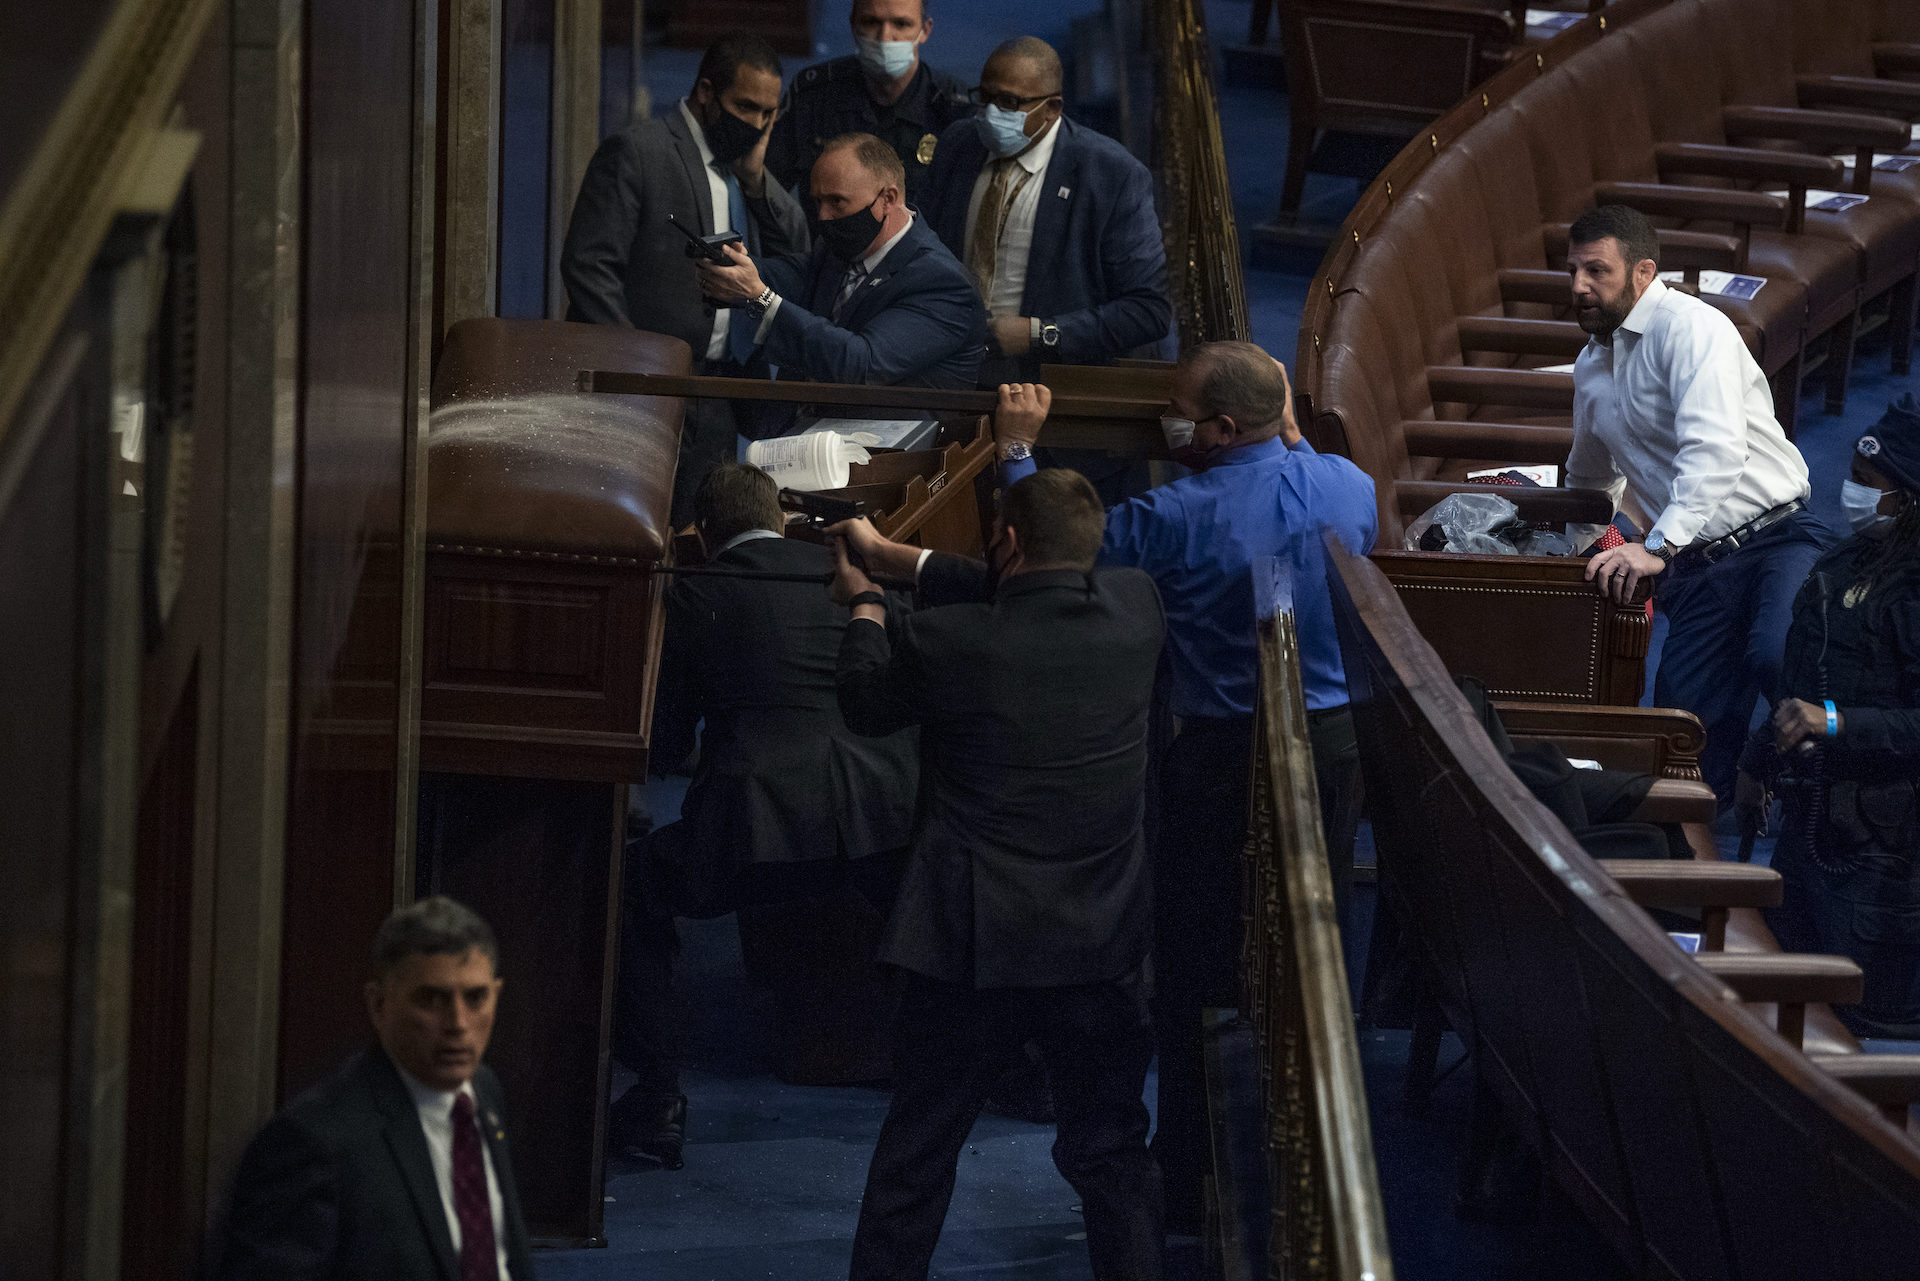 Security barricades the door of the House chamber as protesters try to break in to the joint session of Congress certifying the Electoral College vote on Wednesday. (Tom Williams/CQ-Roll Call, Inc via Getty Images)